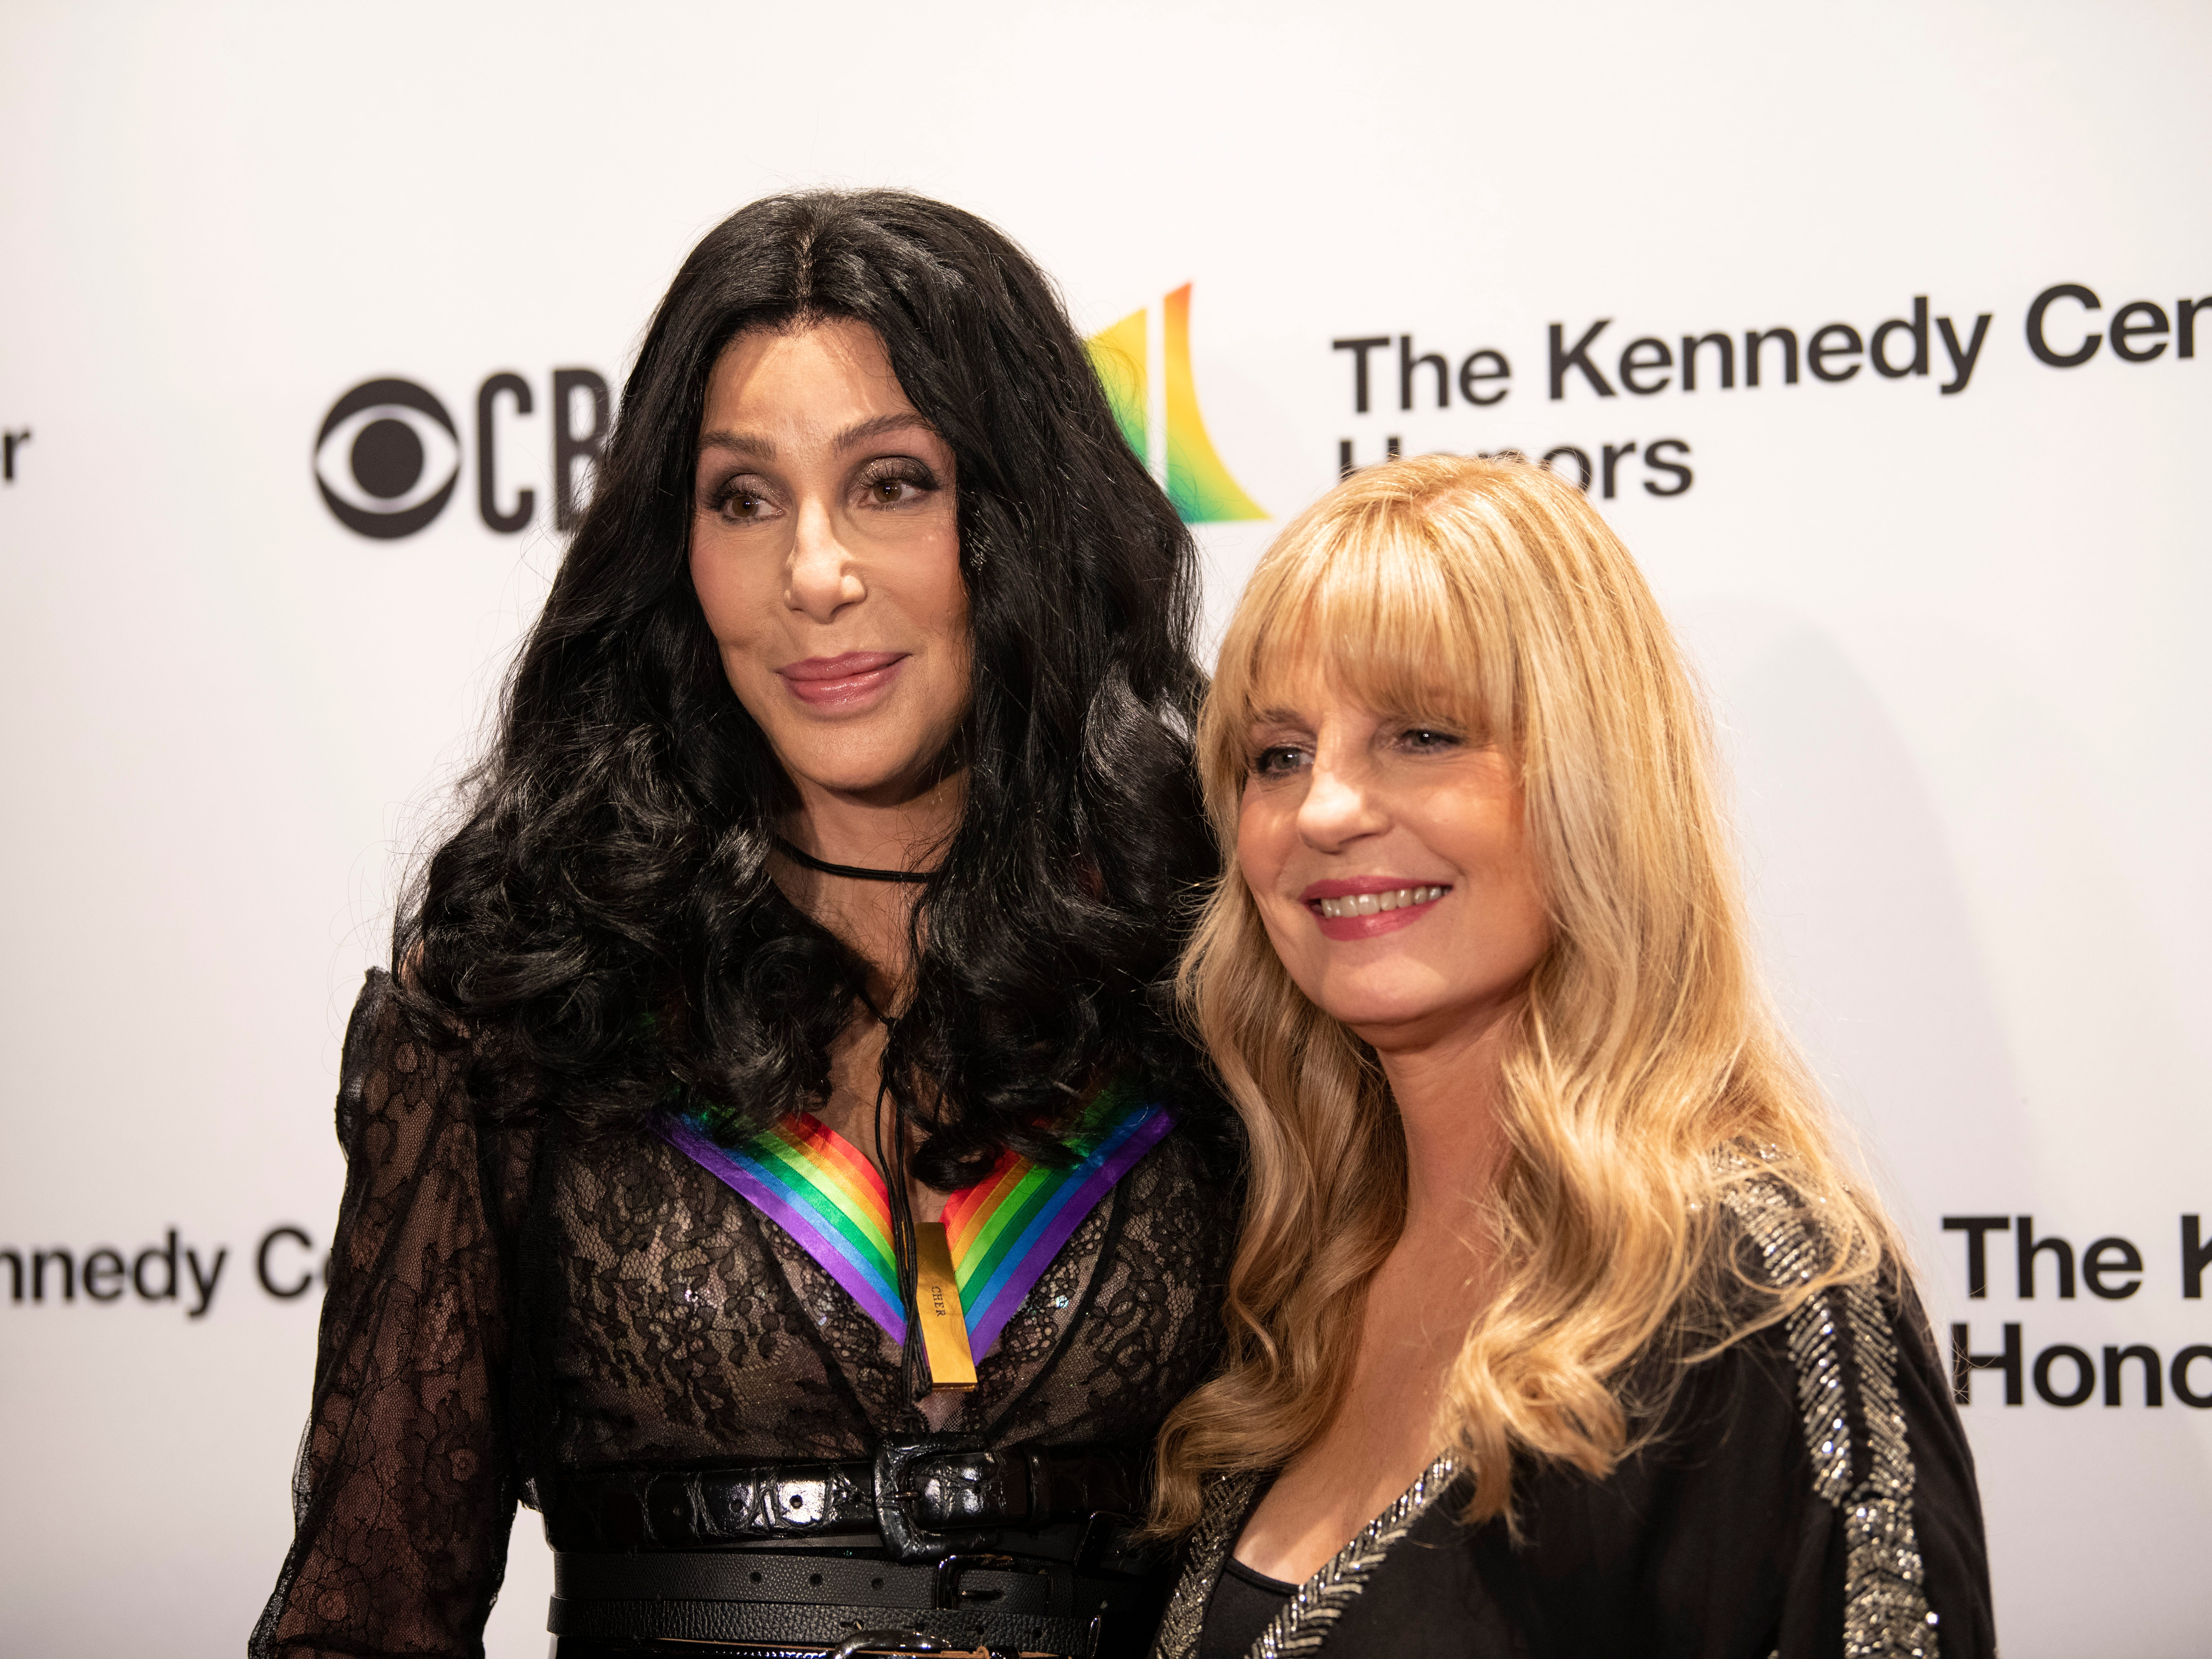 {Dec. 2, 2018} {8:41 p.m.} -- Washington, DC, U.S.A  --  2018 Kennedy Center Honor recipient Cher was joined by her sister Georganne LaPiere on the red carpet before the awards.  --    Photo by Hannah Gaber, USA TODAY staff ORG XMIT:  HG 137674 Kennedy Center H 12/2/2018 [Via MerlinFTP Drop]